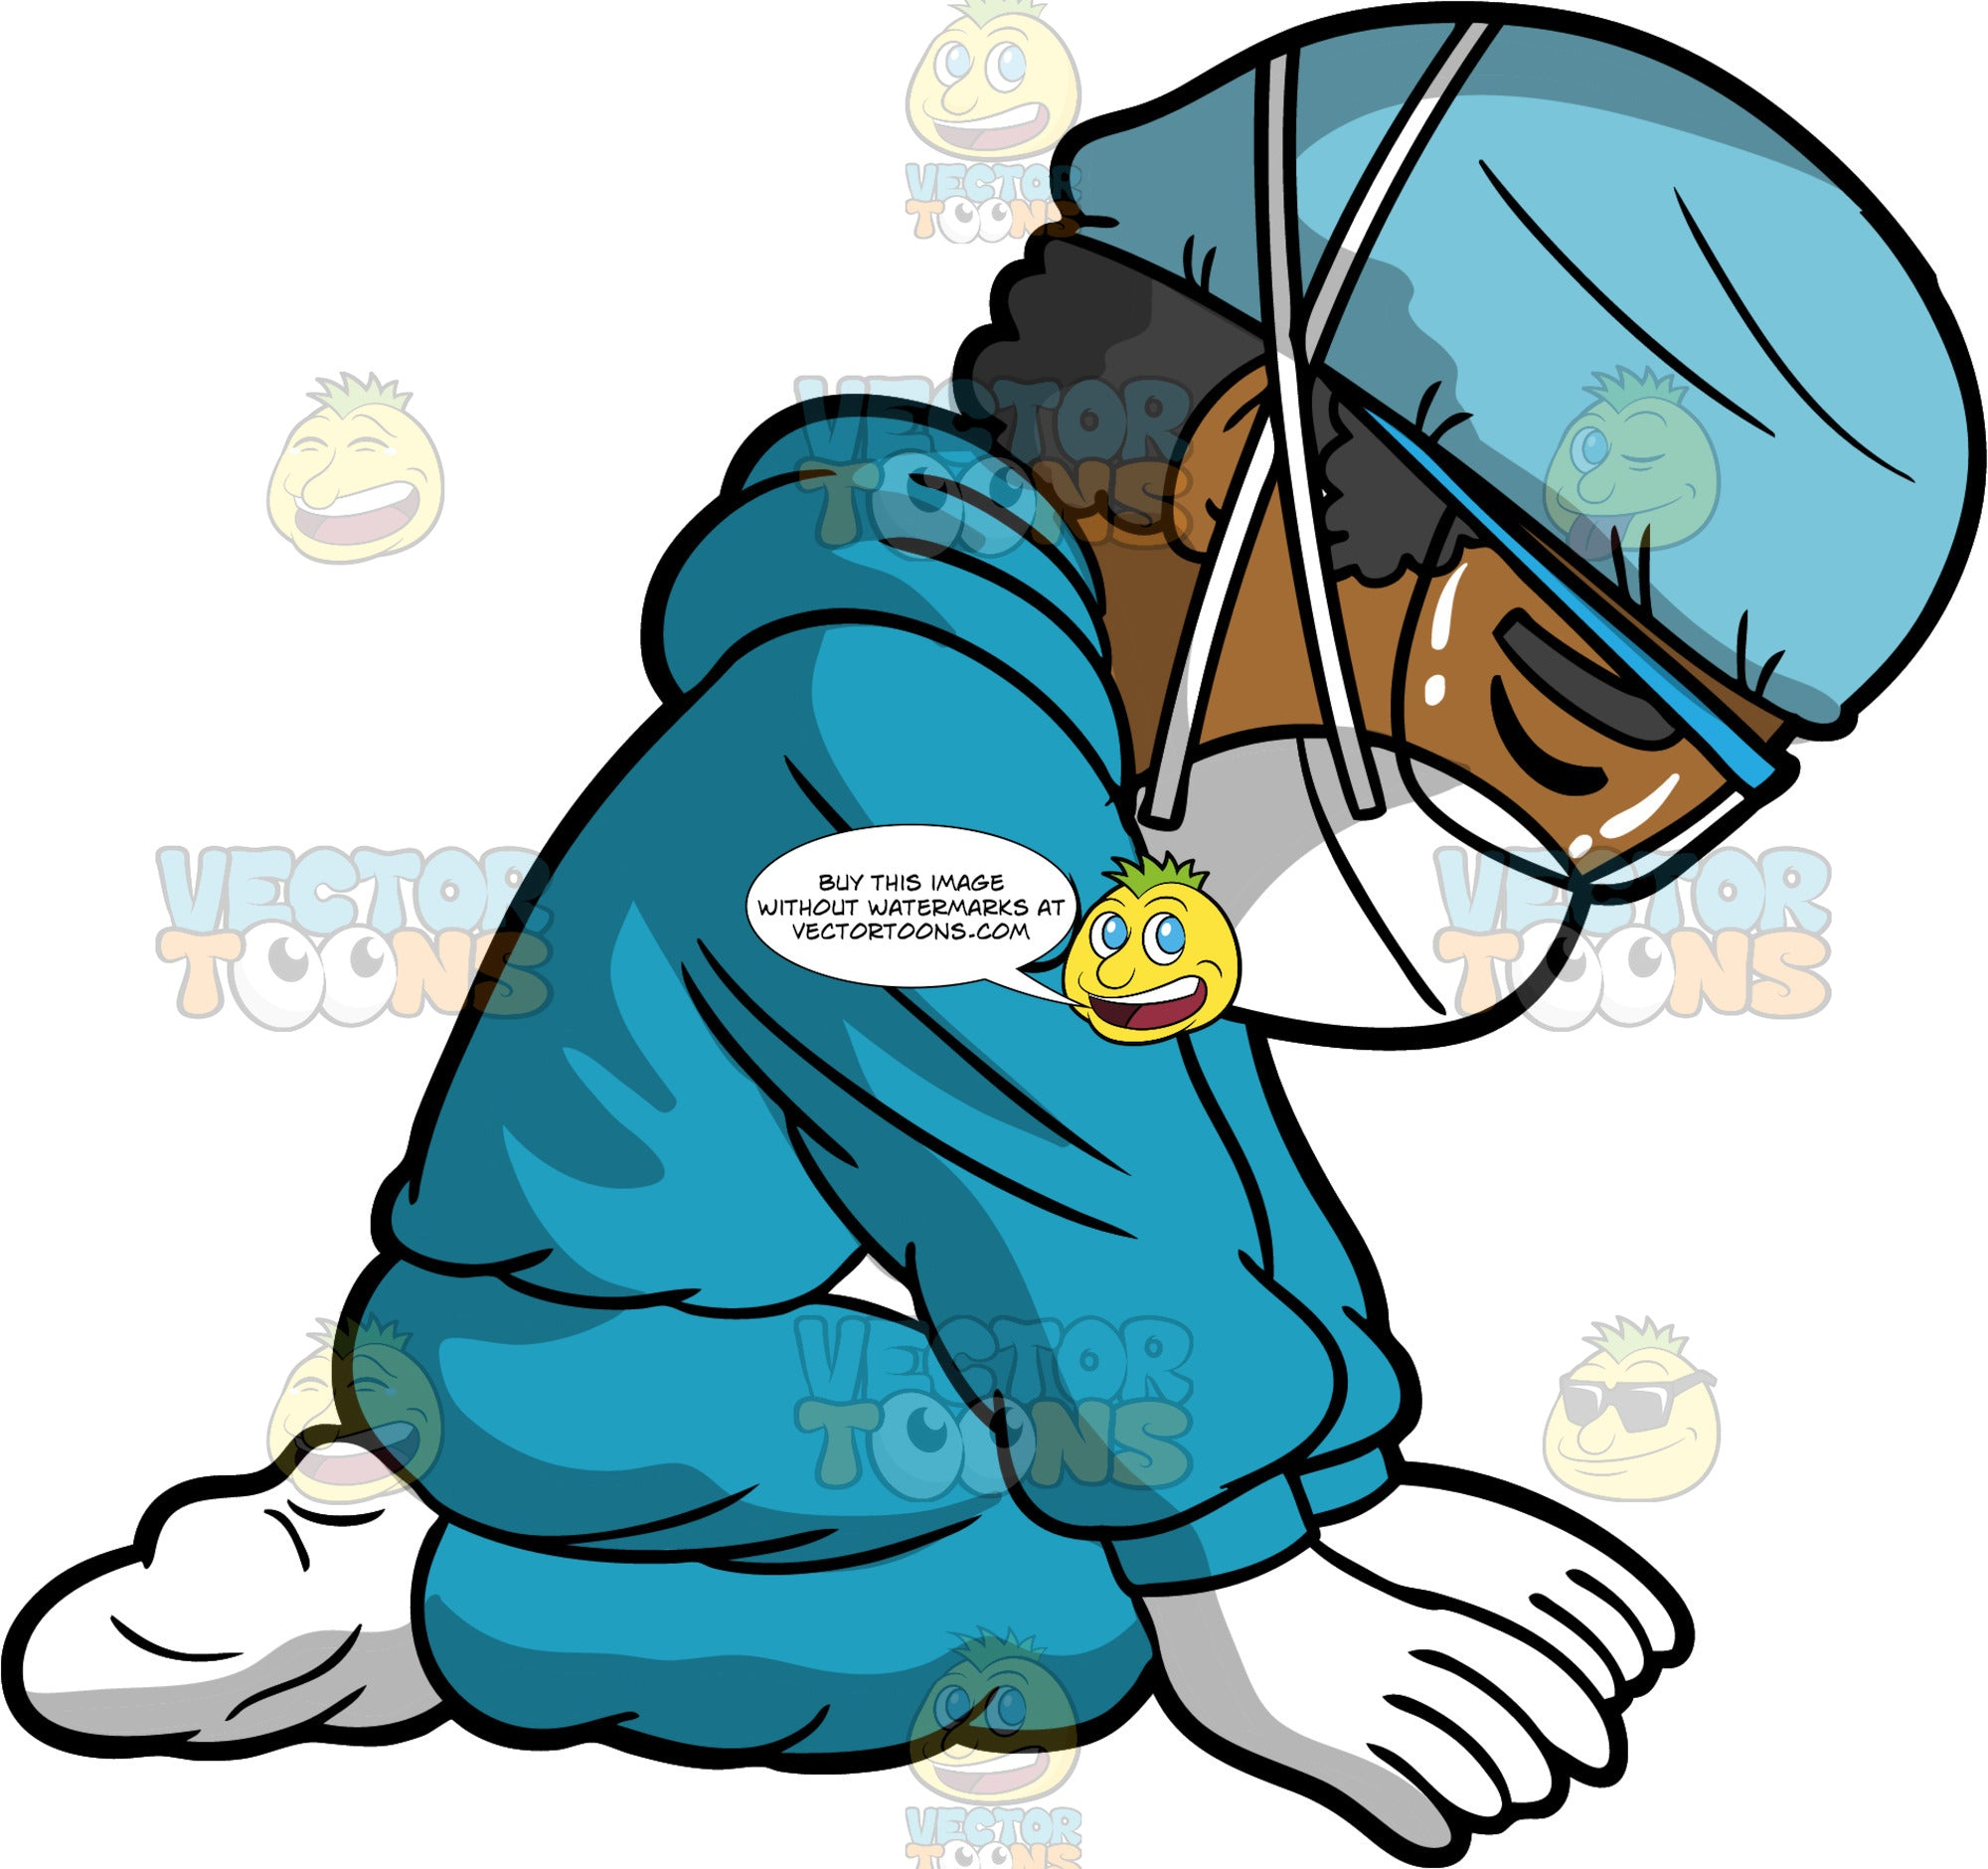 A Nurse Kneeling On The Floor Completely Exhausted. A black man wearing blue surgical scrubs, white booties, white gloves, a blue cap, a face mask, and eye goggles, kneeling on the ground with his eyes closed looking drained